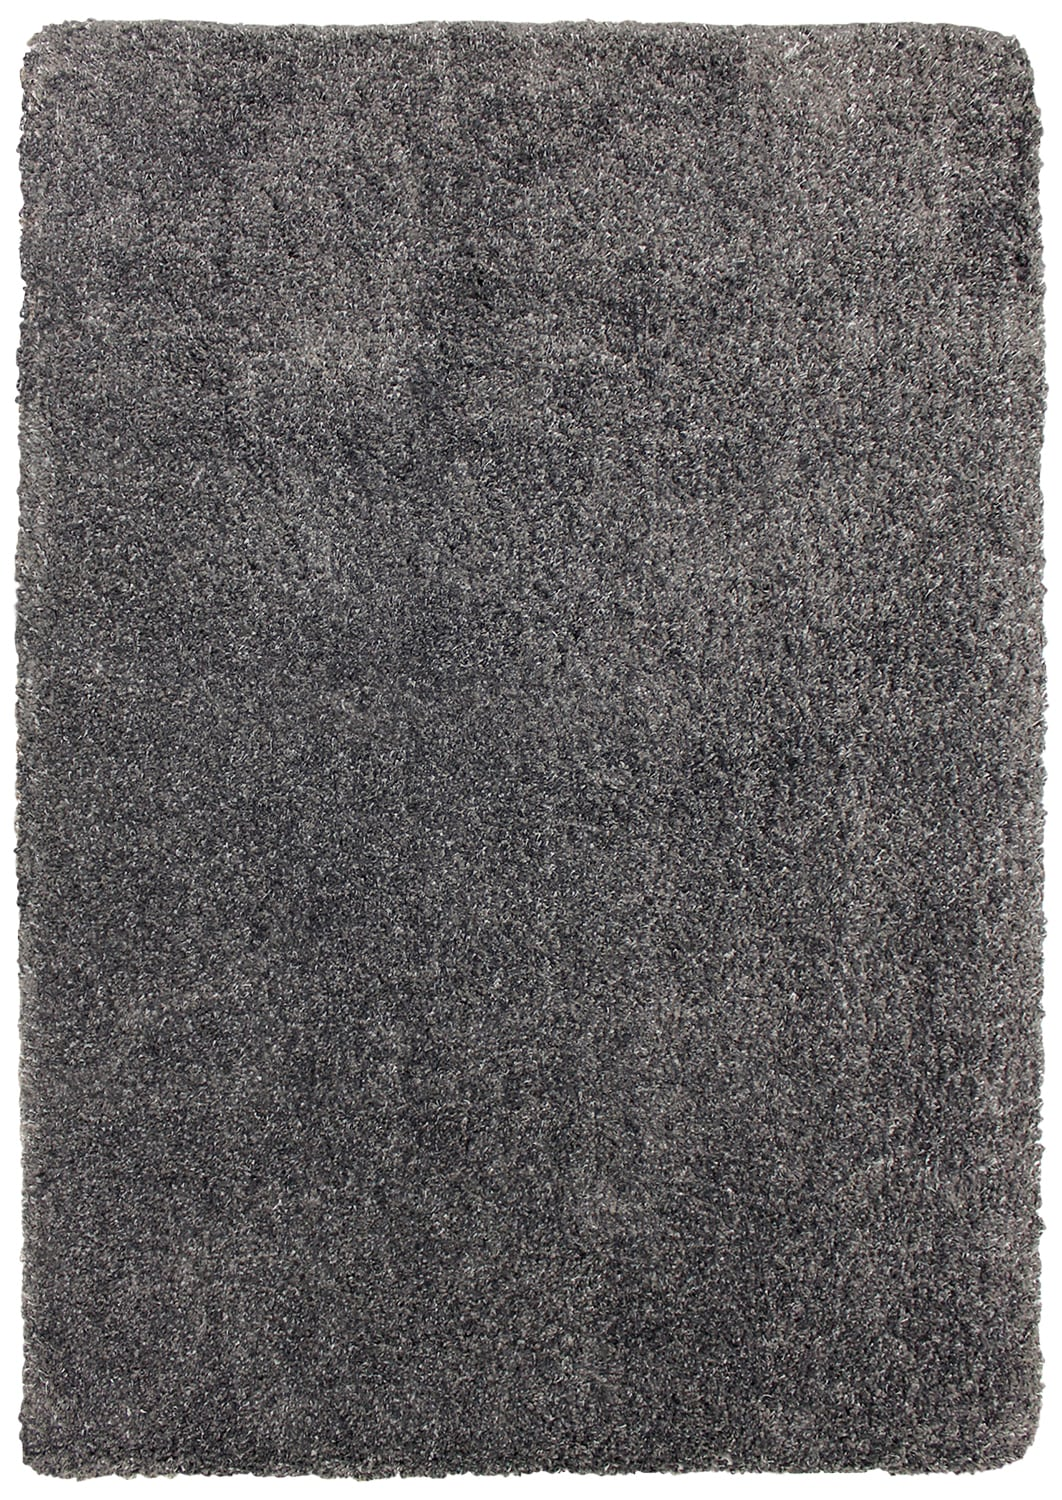 Loft Charcoal Grey Shag Area Rug – 7' x 10'